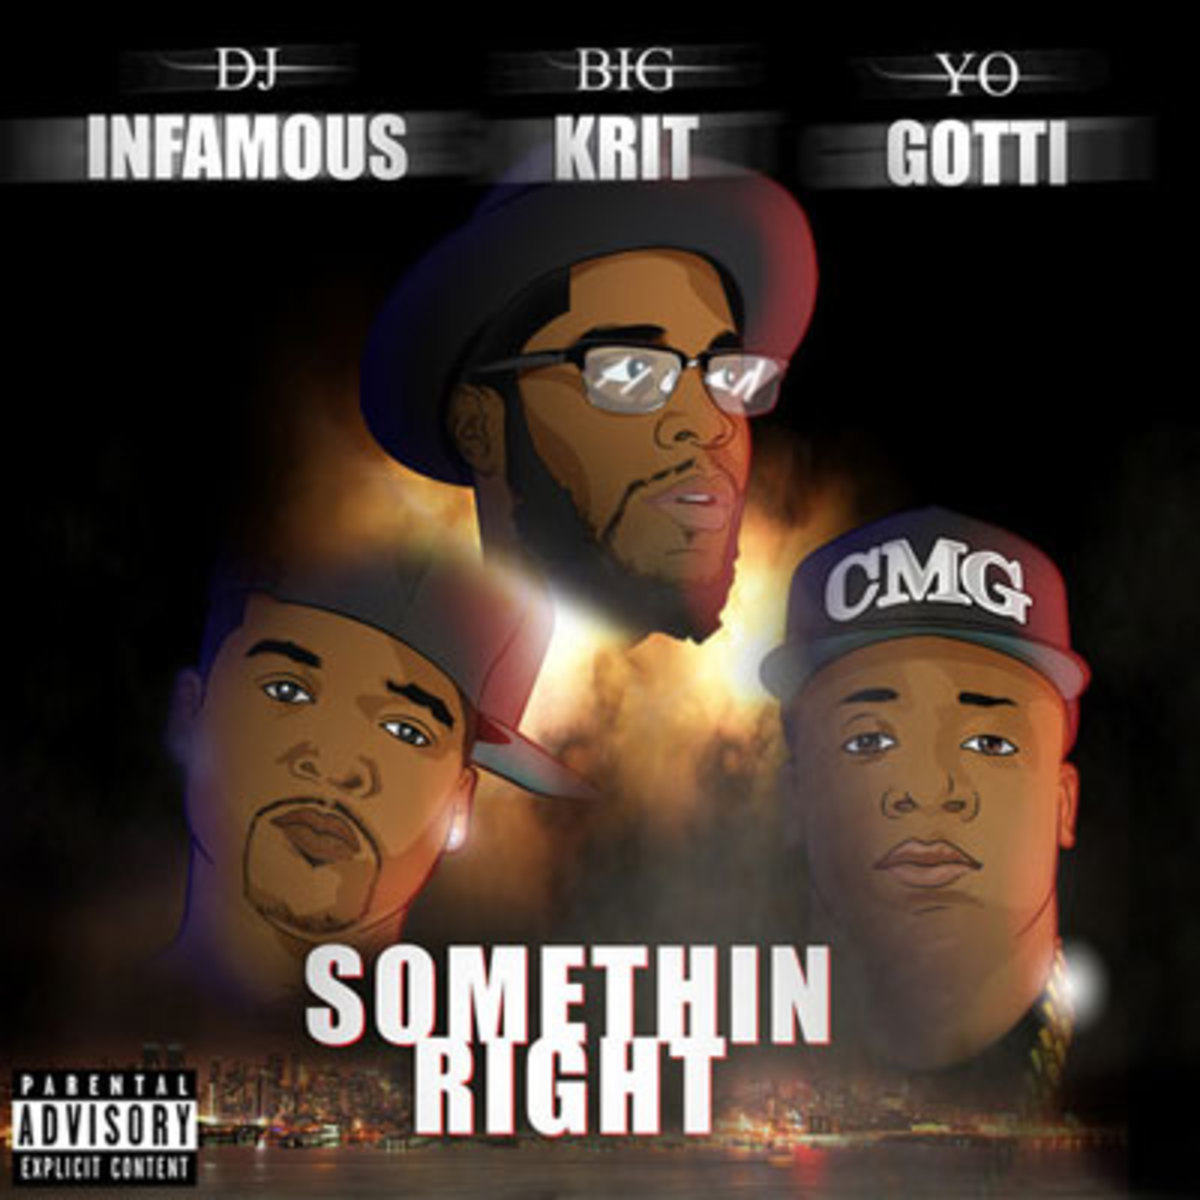 djinfamous-somethingright.jpg